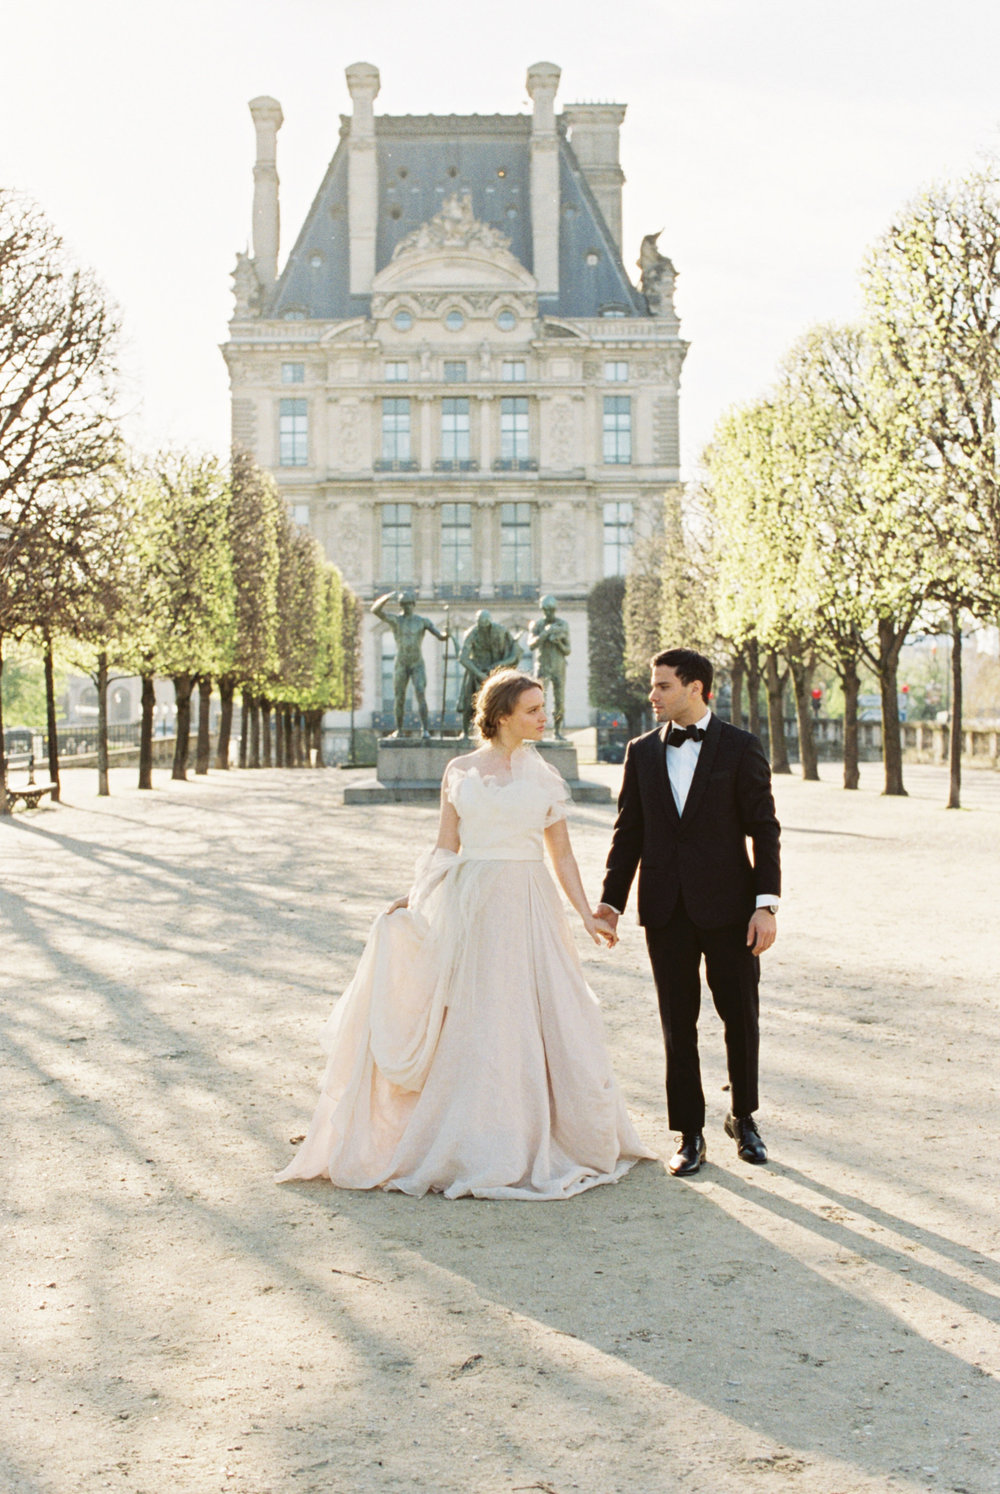 Grand palais wedding gown blush and tulle71.jpg